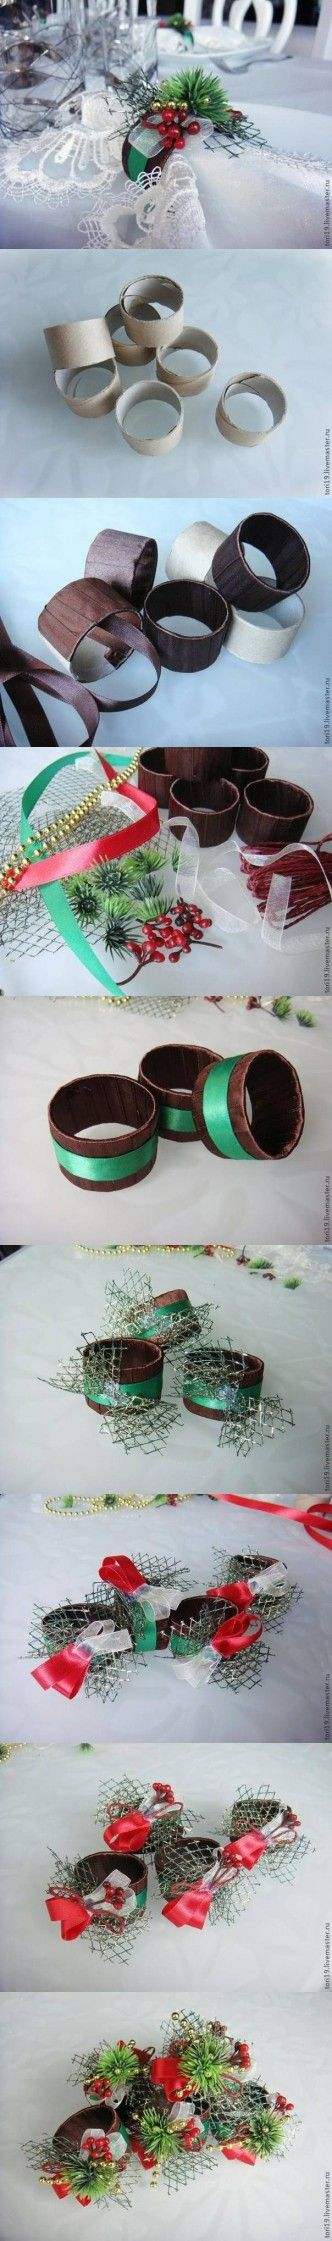 DIY Toilet Roll Custom Napkin Rings DIY Projects